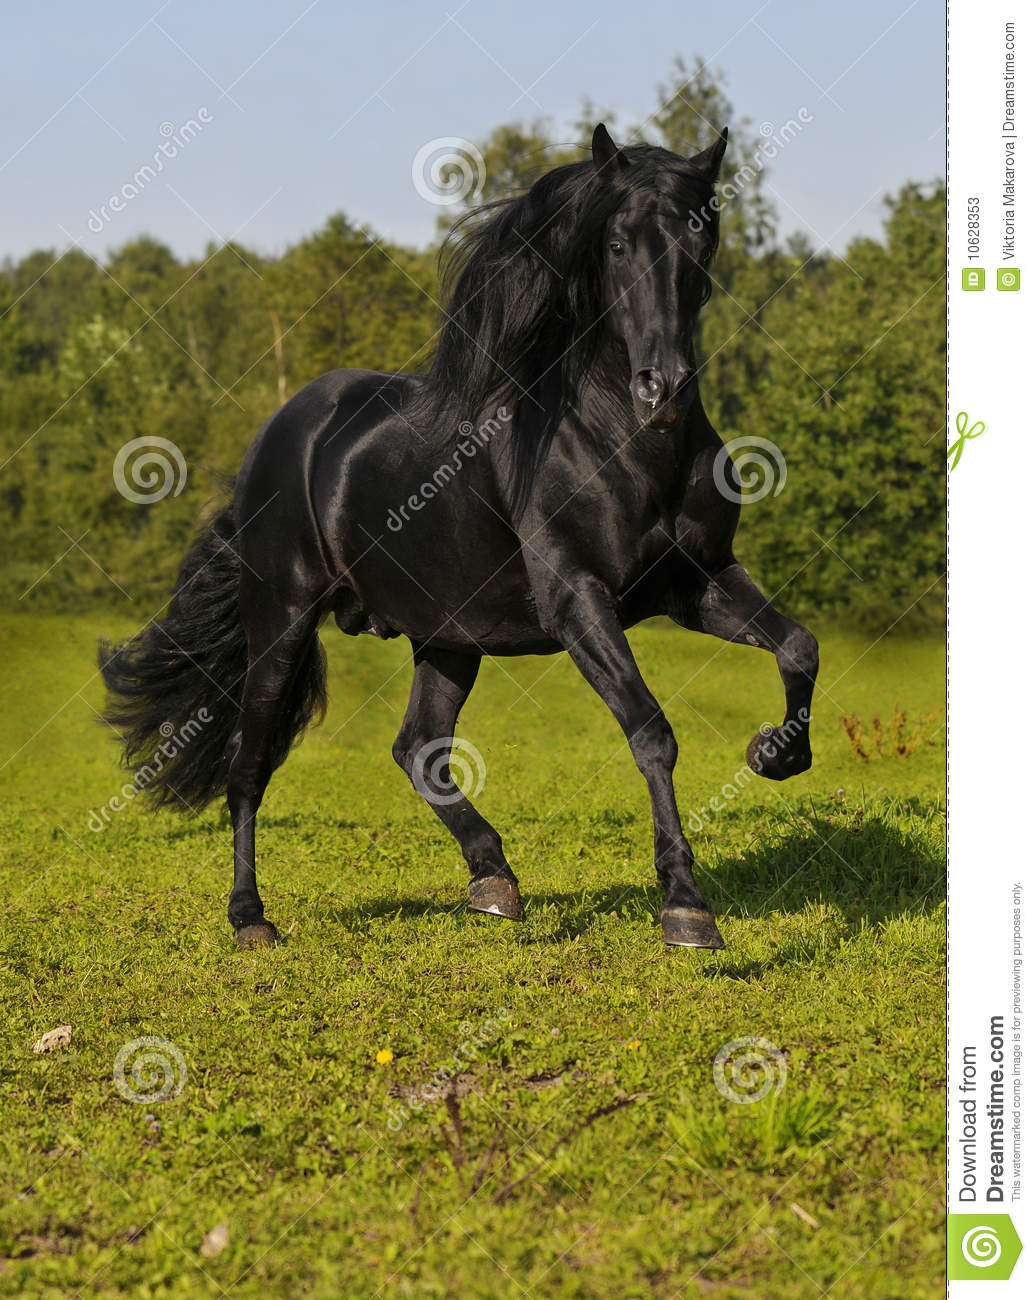 The free black horse run gallop on the field